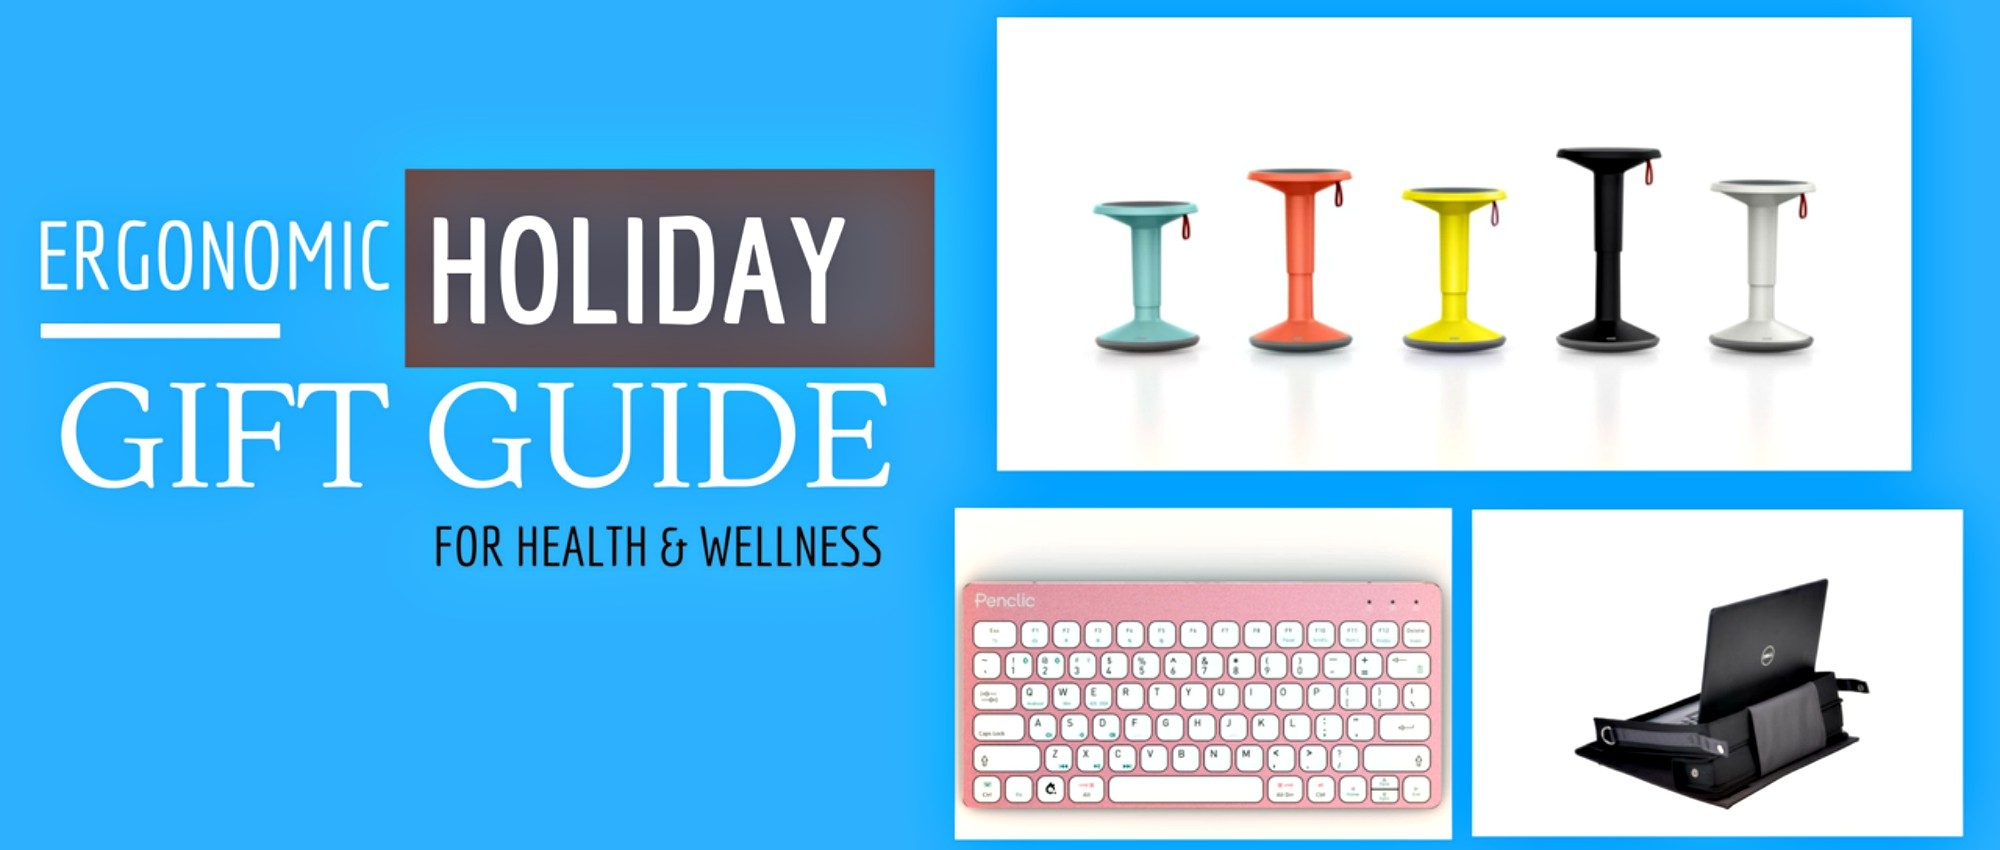 ergonomic holiday gift guide health and wellness